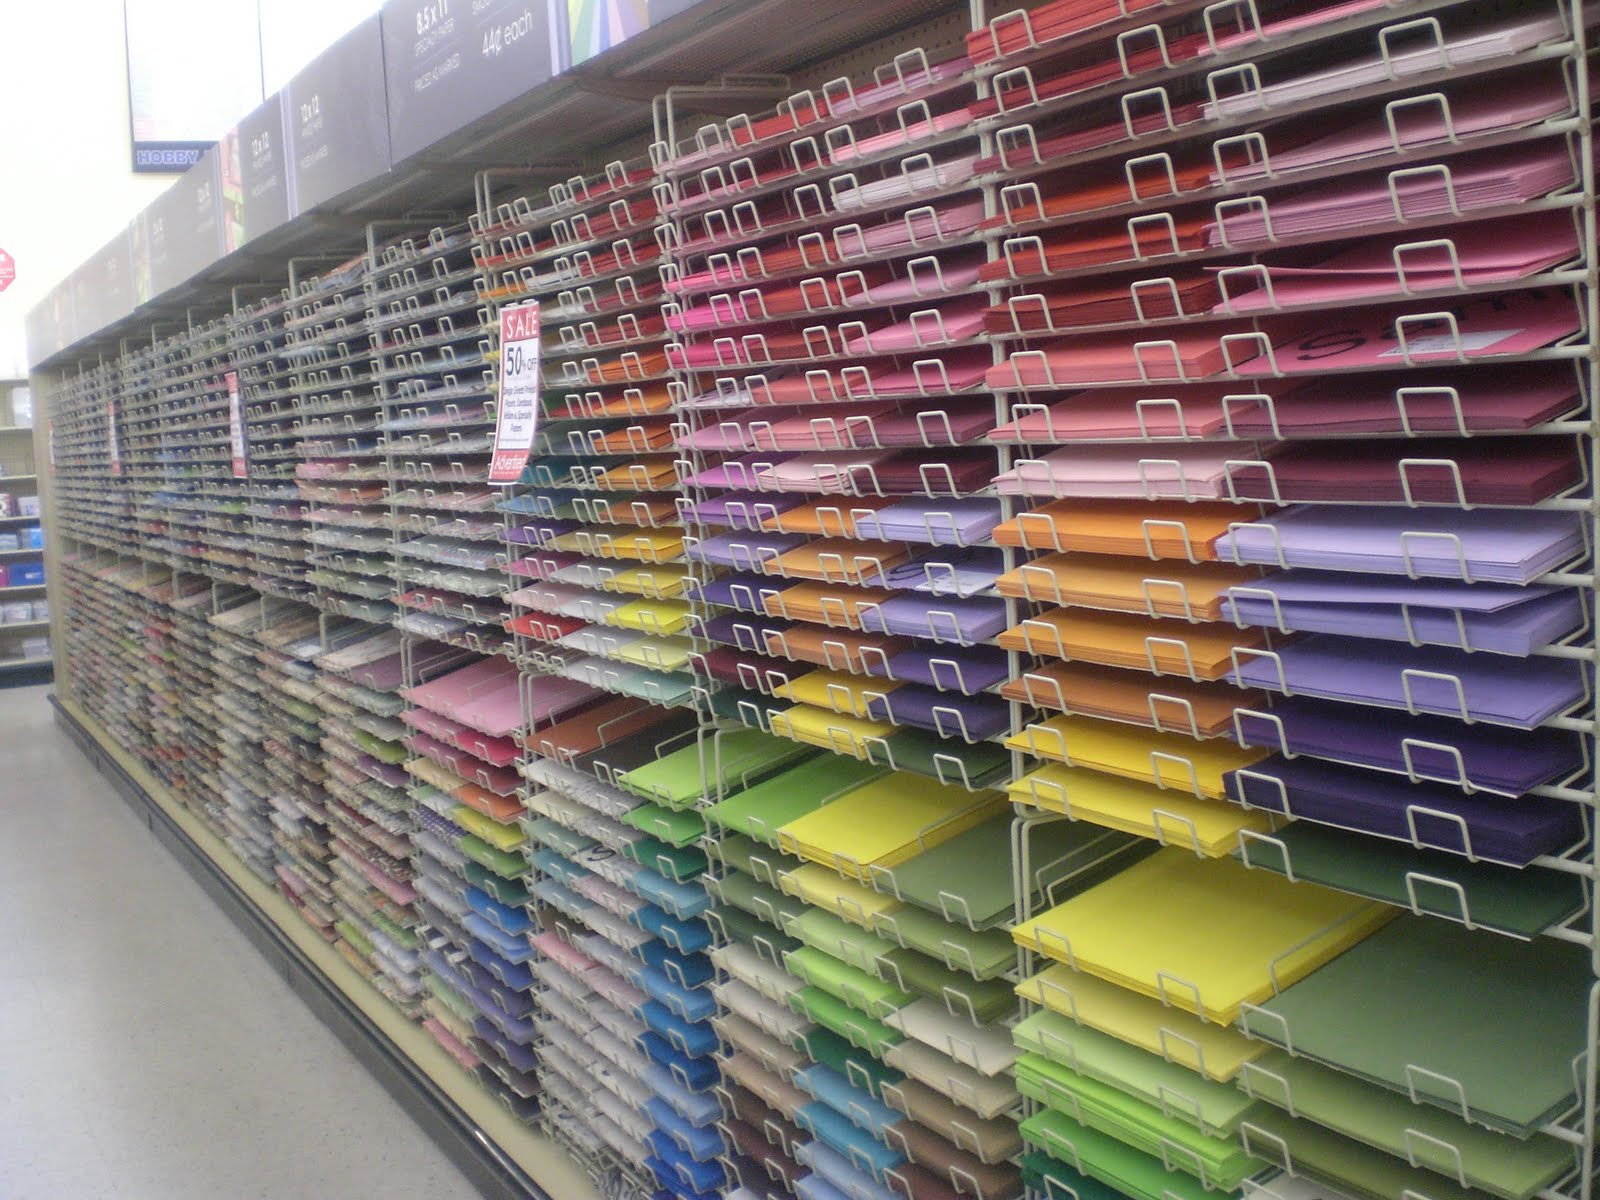 michelle paige blogs my new crush hobby lobby On michaels craft store spokane